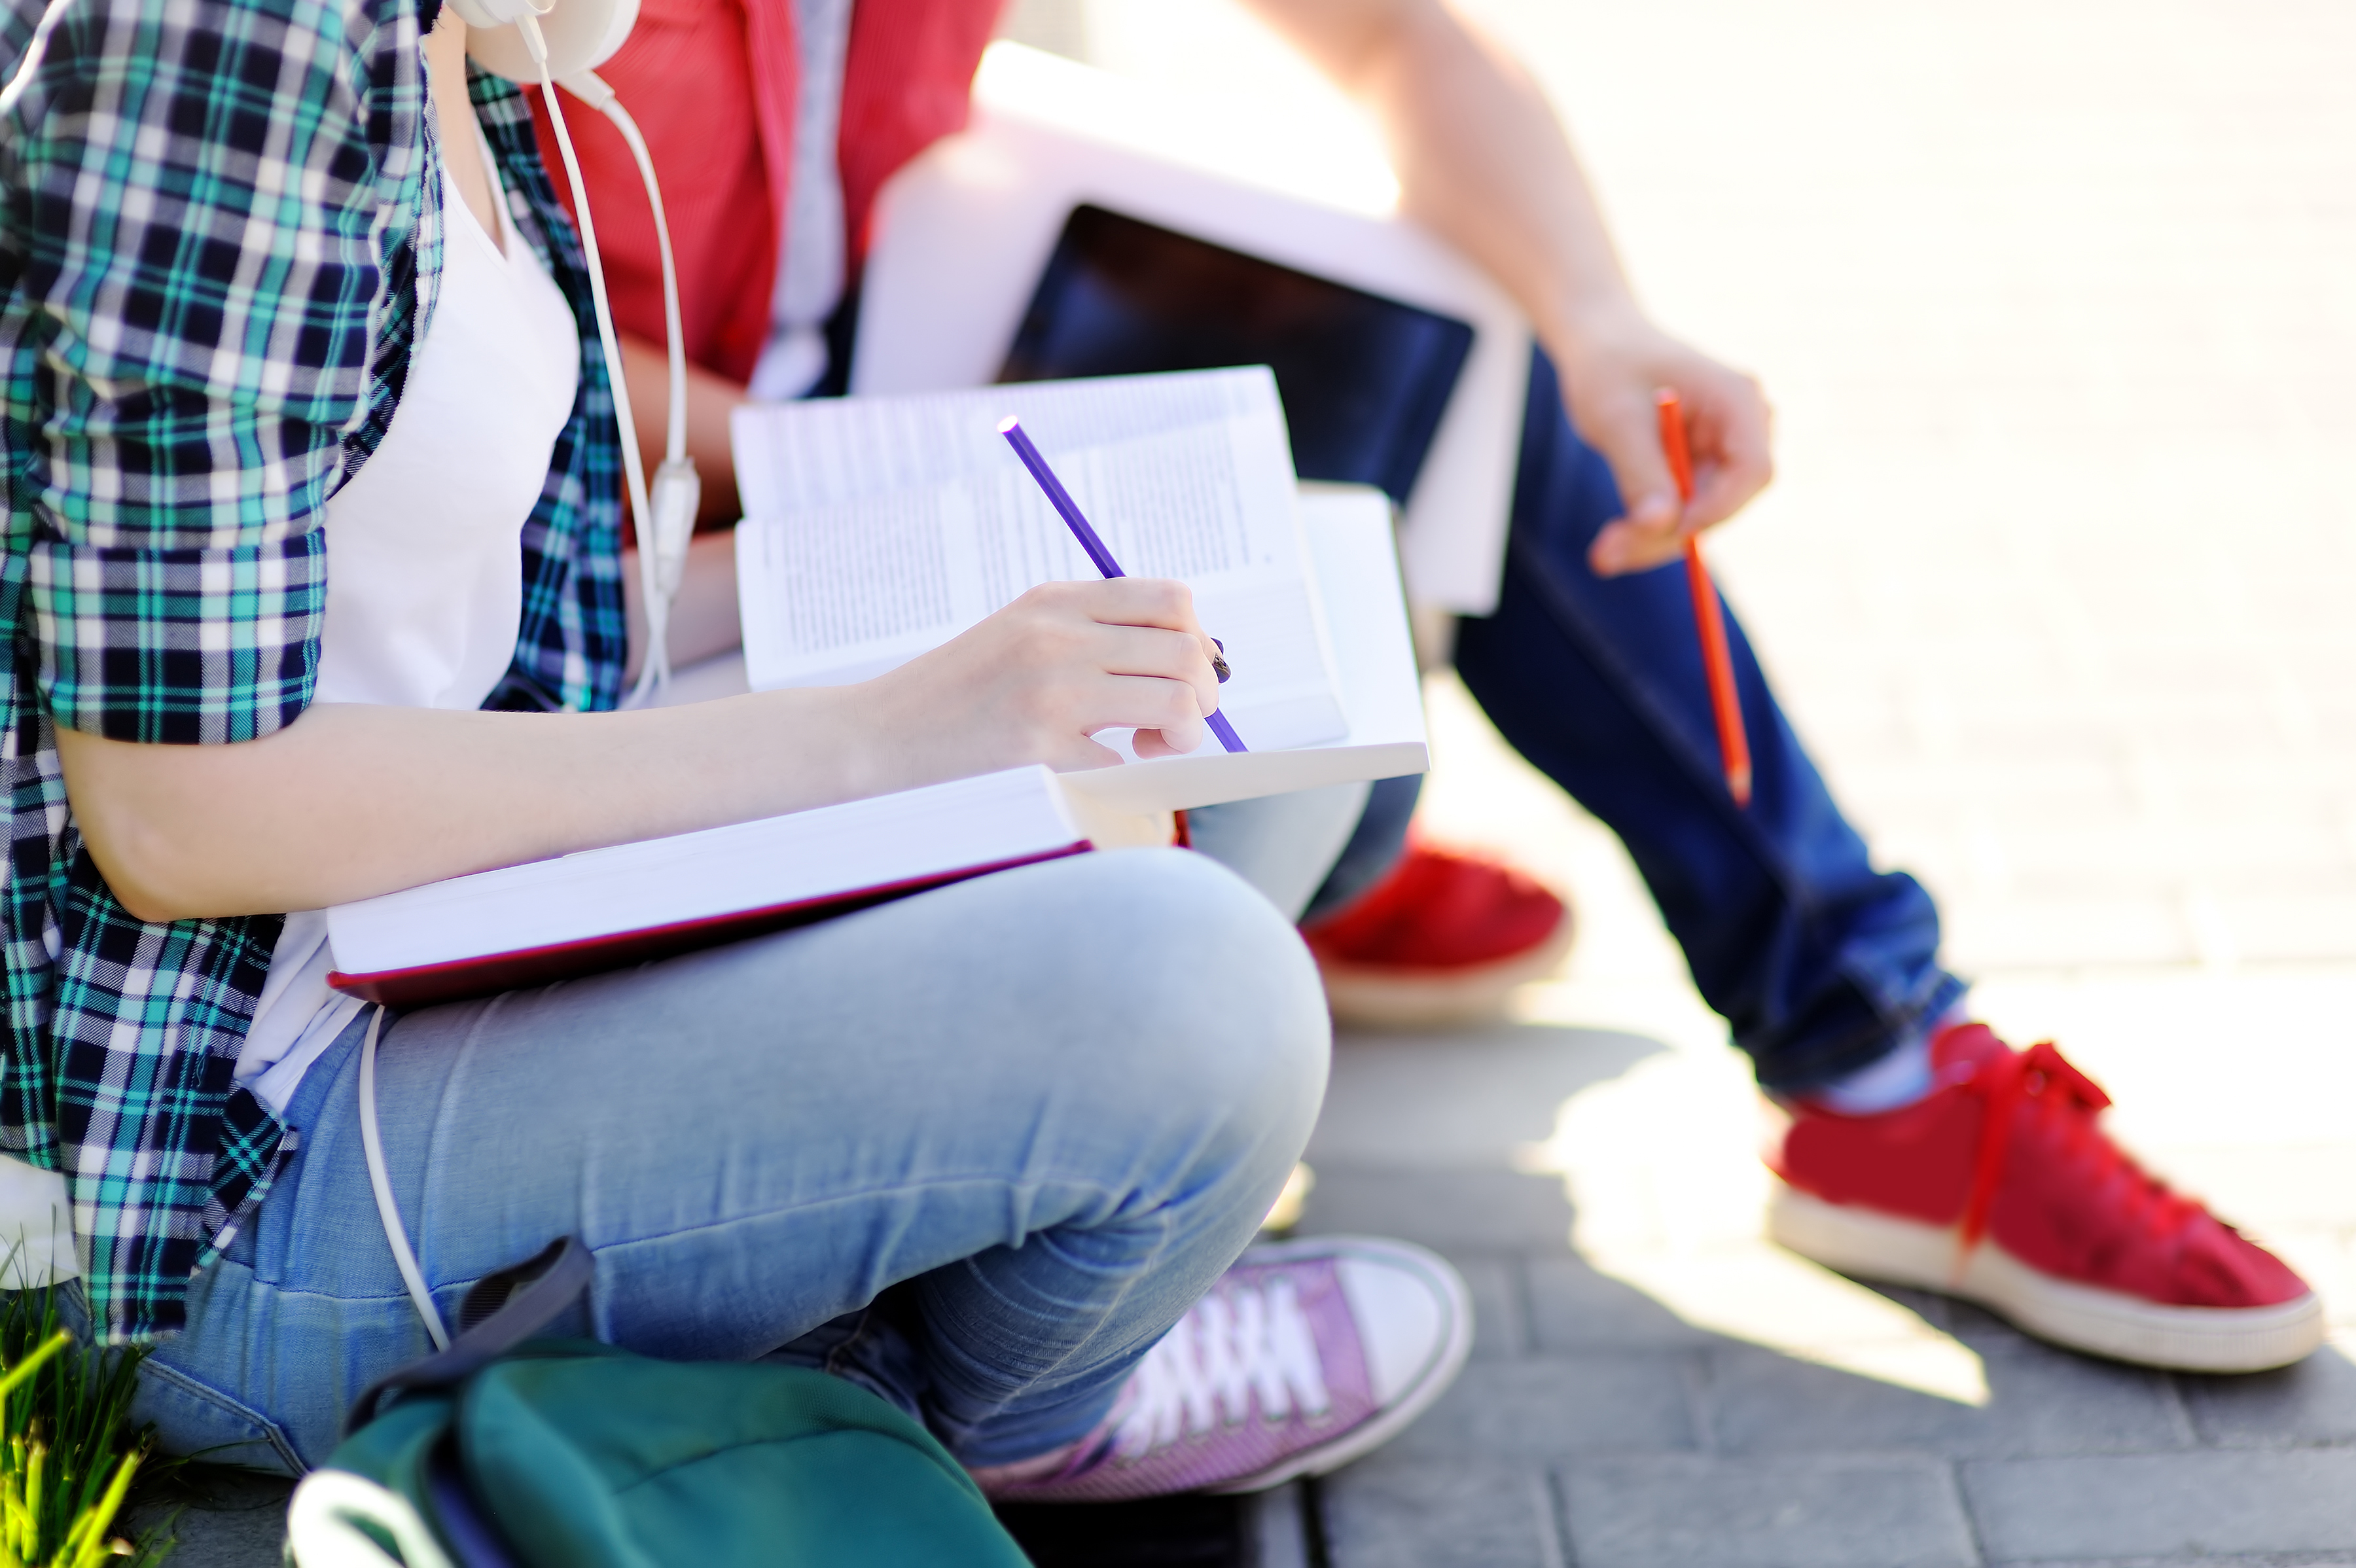 Books and pencils resting on students' knees.